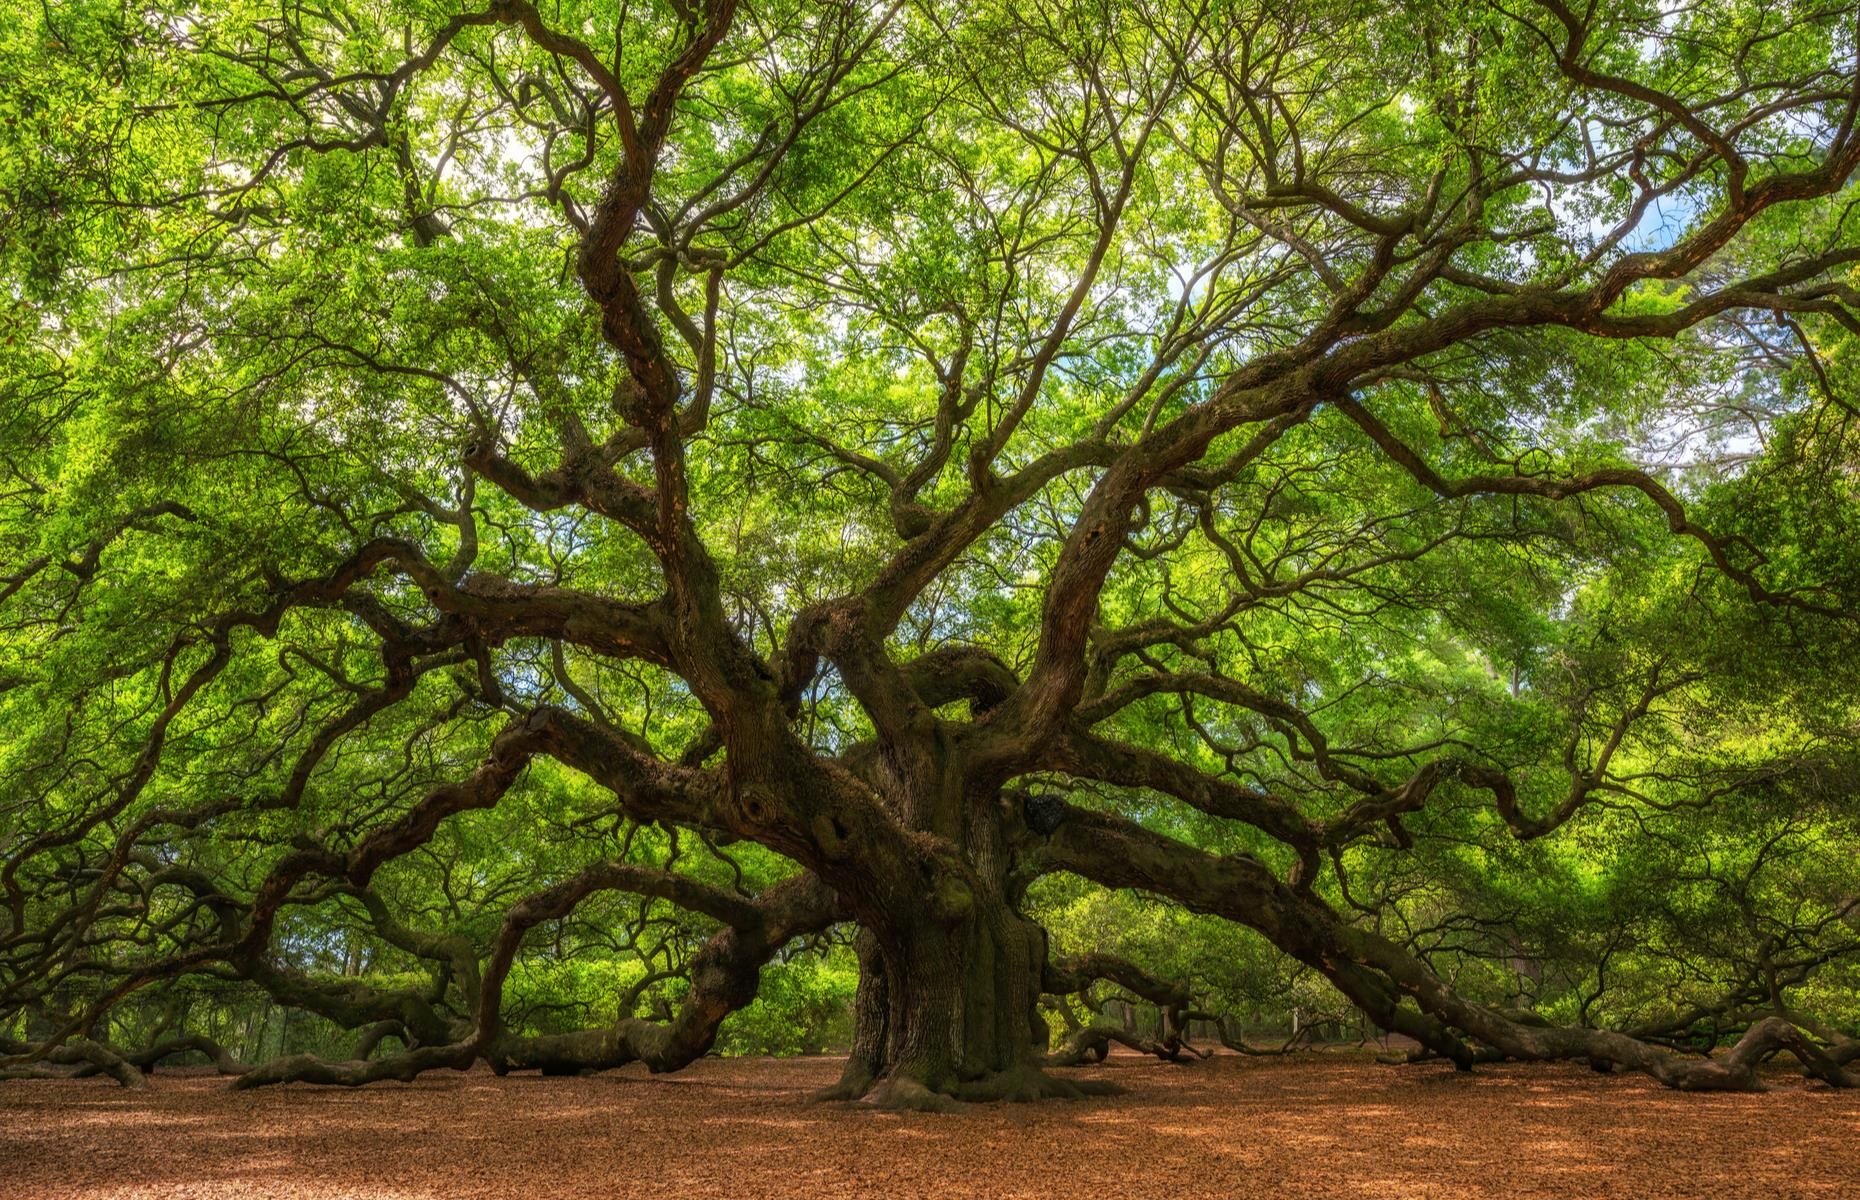 Slide 41 of 51: Mossy, velvety live oak trees are as Southern as barbecueand charm, and South Carolina is rich in all three. Few trees, though, are so spectacular – or famous – as the Angel Oak, which shades around 17,000 square feet (1,579sqm) of grassy parkland and is believed to be around 400 years old. You can't spread your blanket right under the broad canopy, but there is a picnic area on the site so you can enjoy your meal with an iconic view.